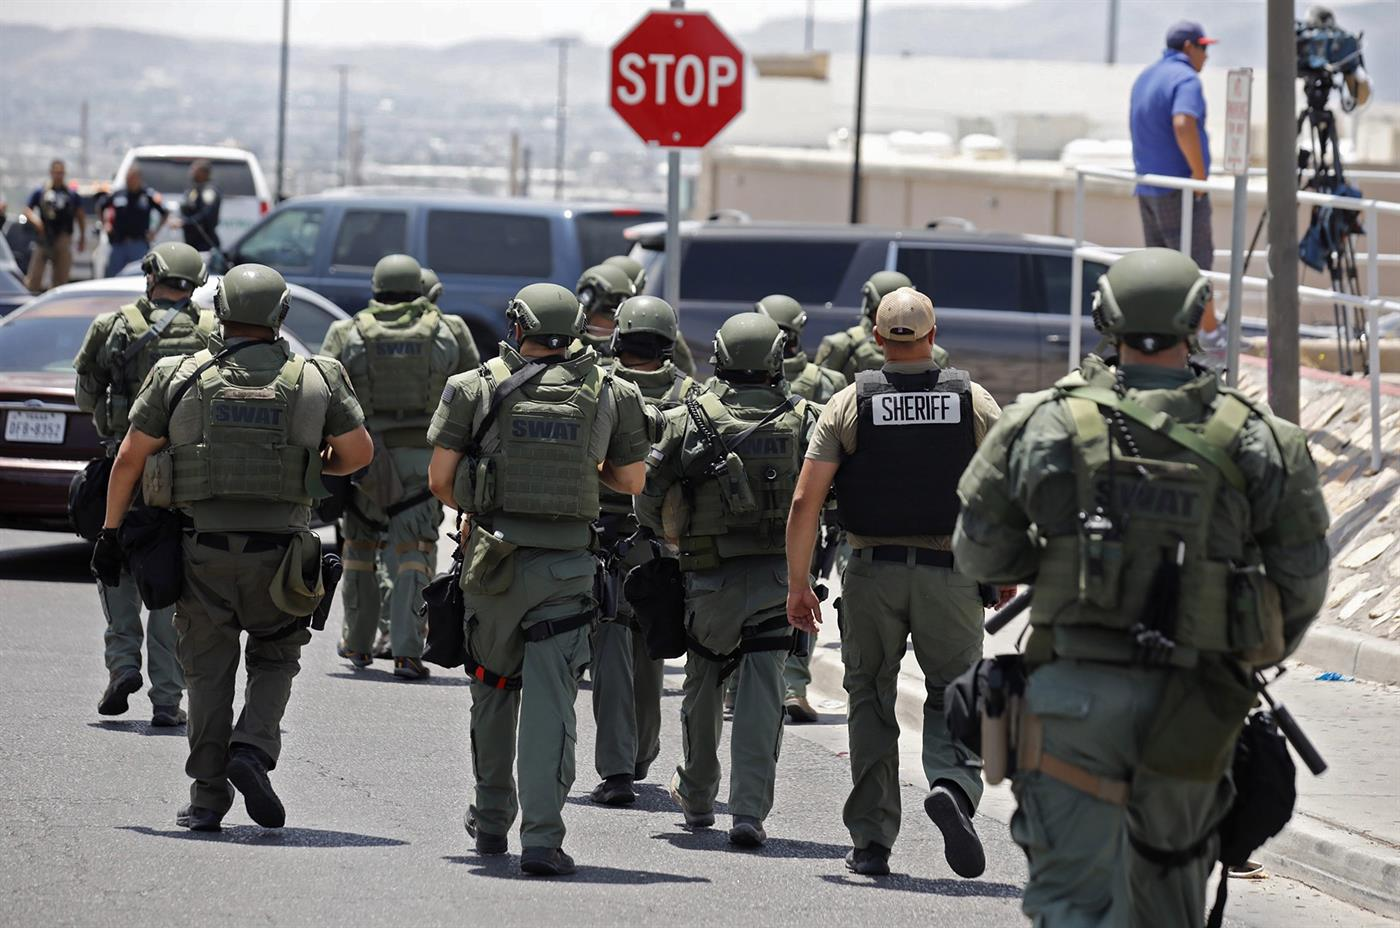 epa07755412 Police officers respond to a shooting incident at a Walmart in El Paso, Texas, USA, 03 August